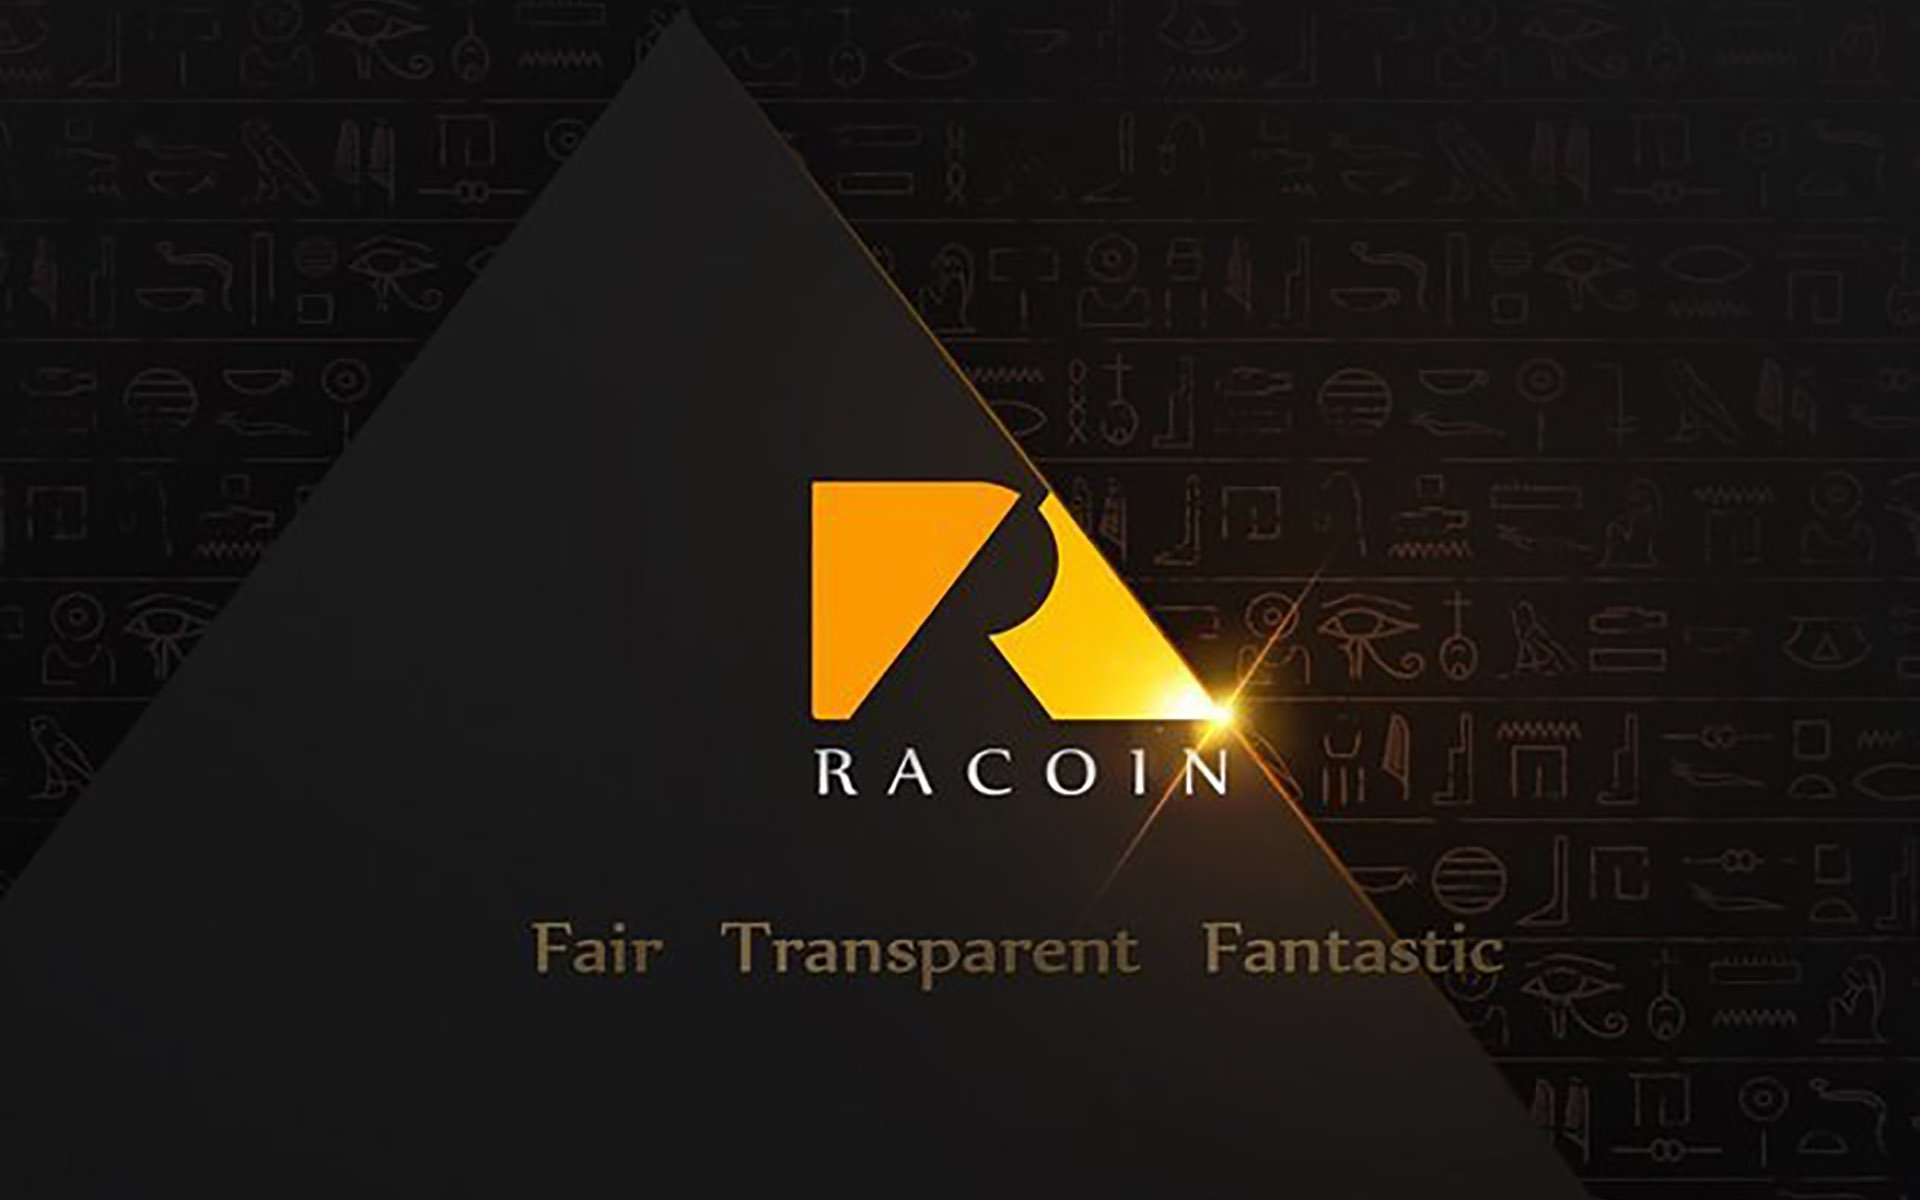 Racoin - A New Global Gambling Cryptocurrency